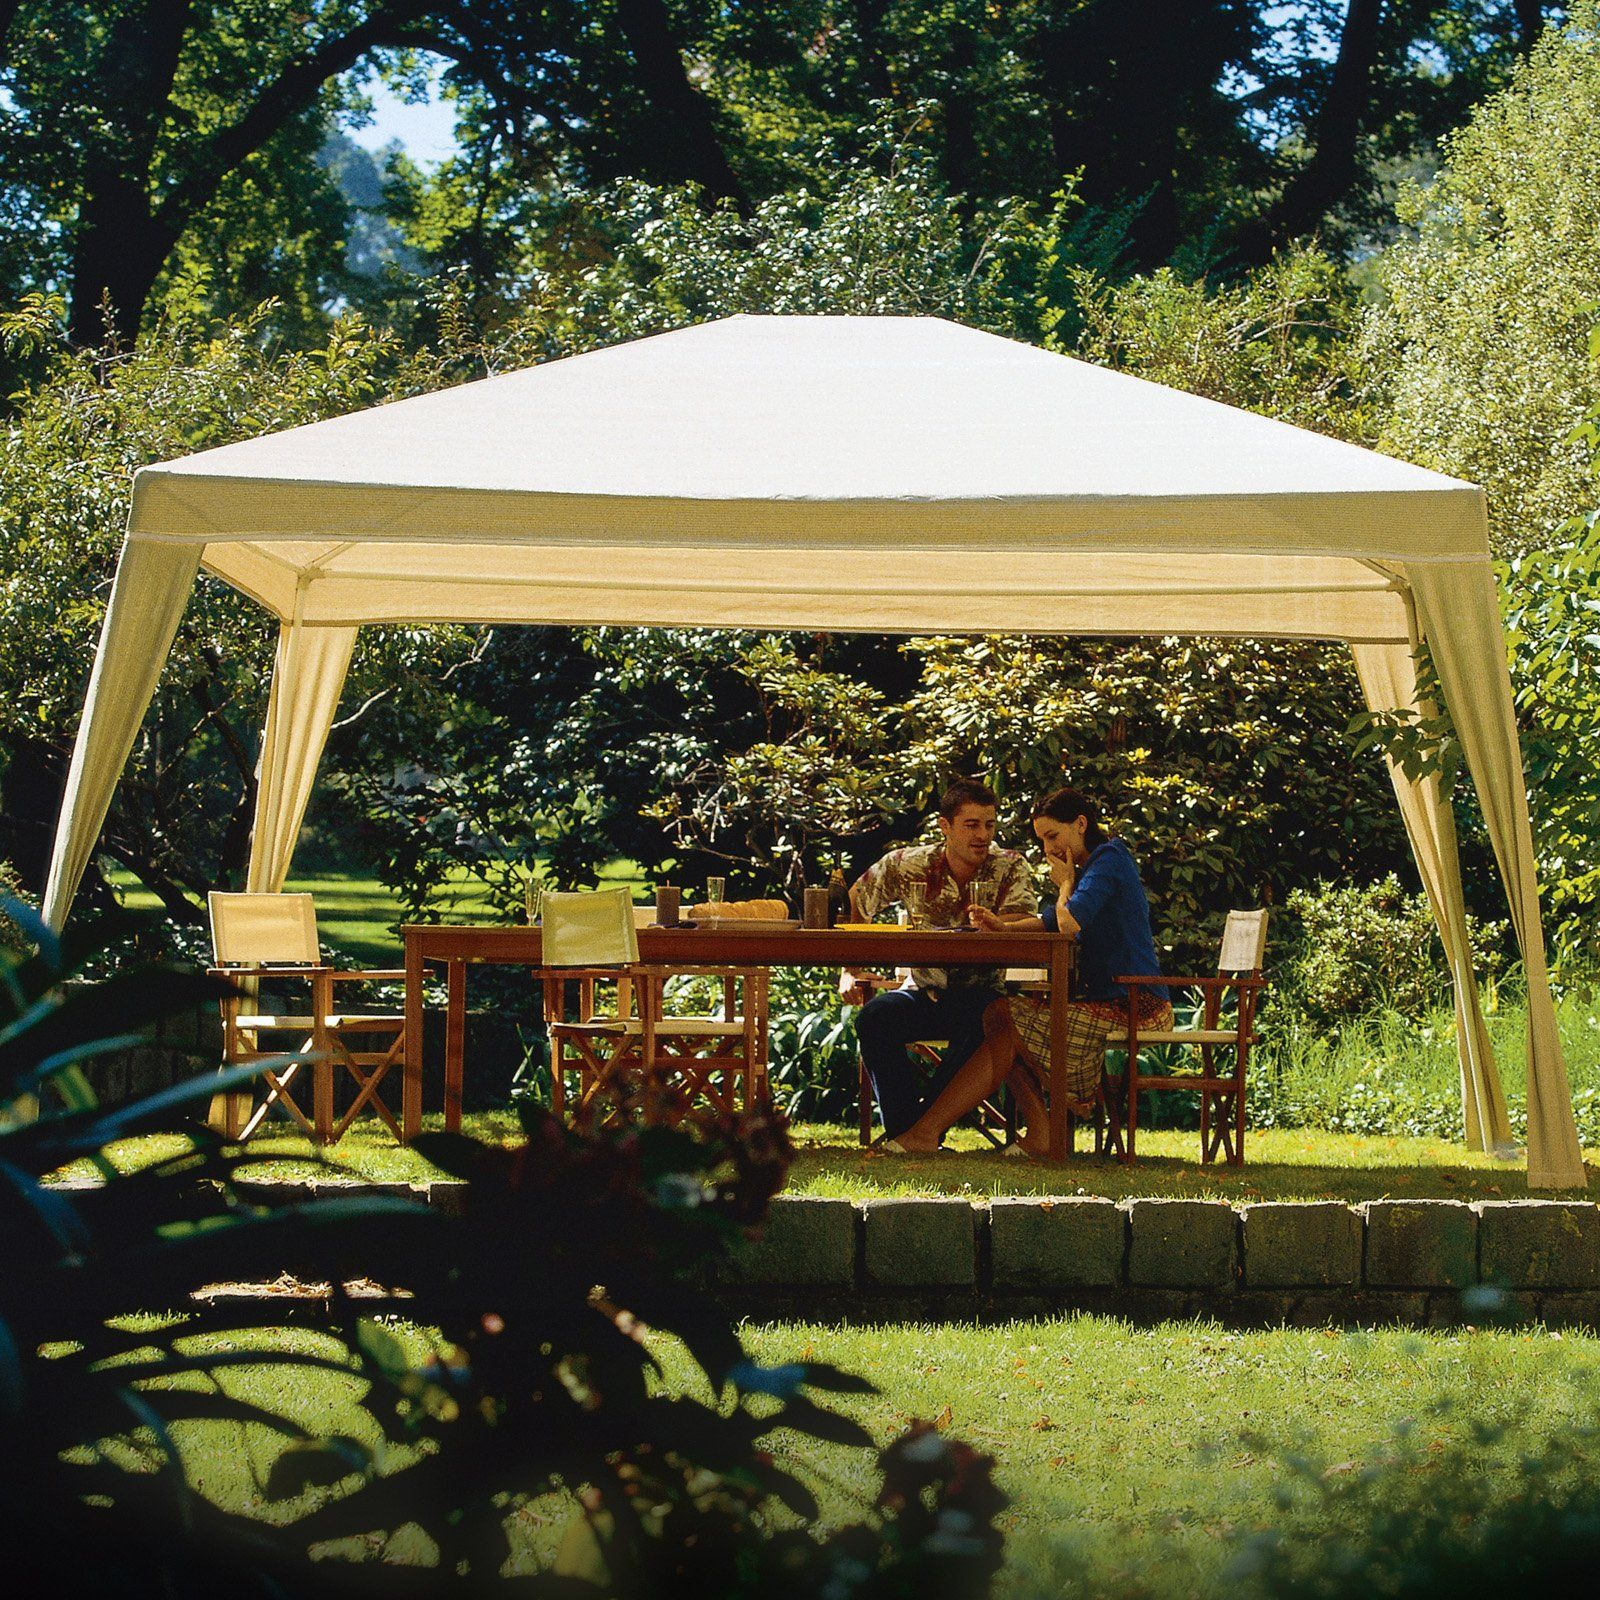 Coolaroo 10 x 12 ft. Aluminum Gazebo Canopy - Canopies at Hayneedle & Coolaroo 10 x 12 ft. Aluminum Gazebo Canopy - Canopies at ...